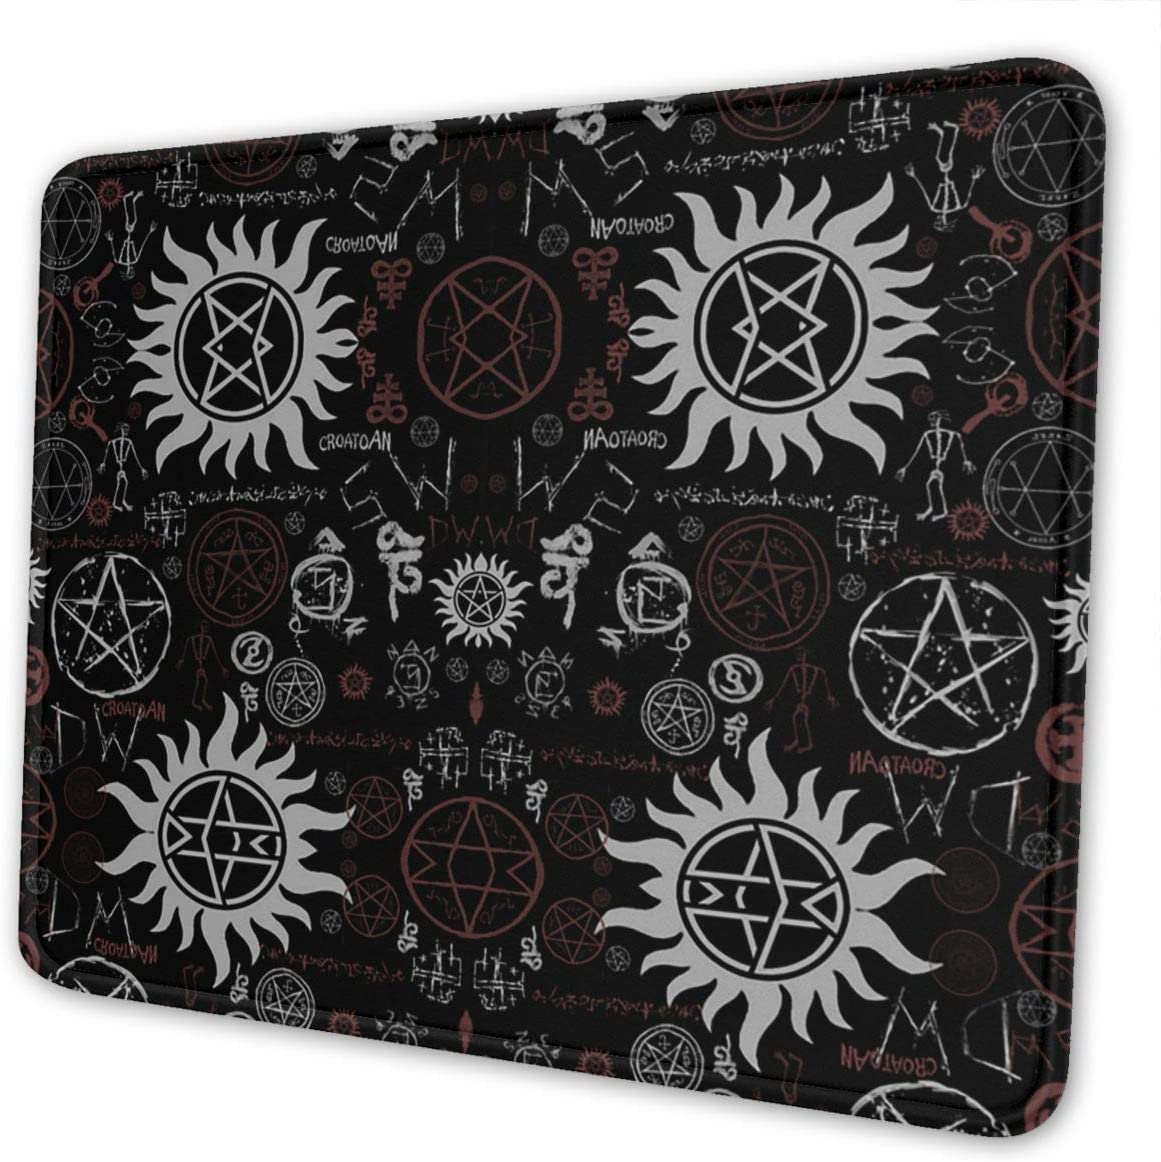 Customized Gaming Mouse Pad Supernatural Symbols Black Mousepad Non-Slip Rubber Base for Computers Laptop Office Home Mouse Mat